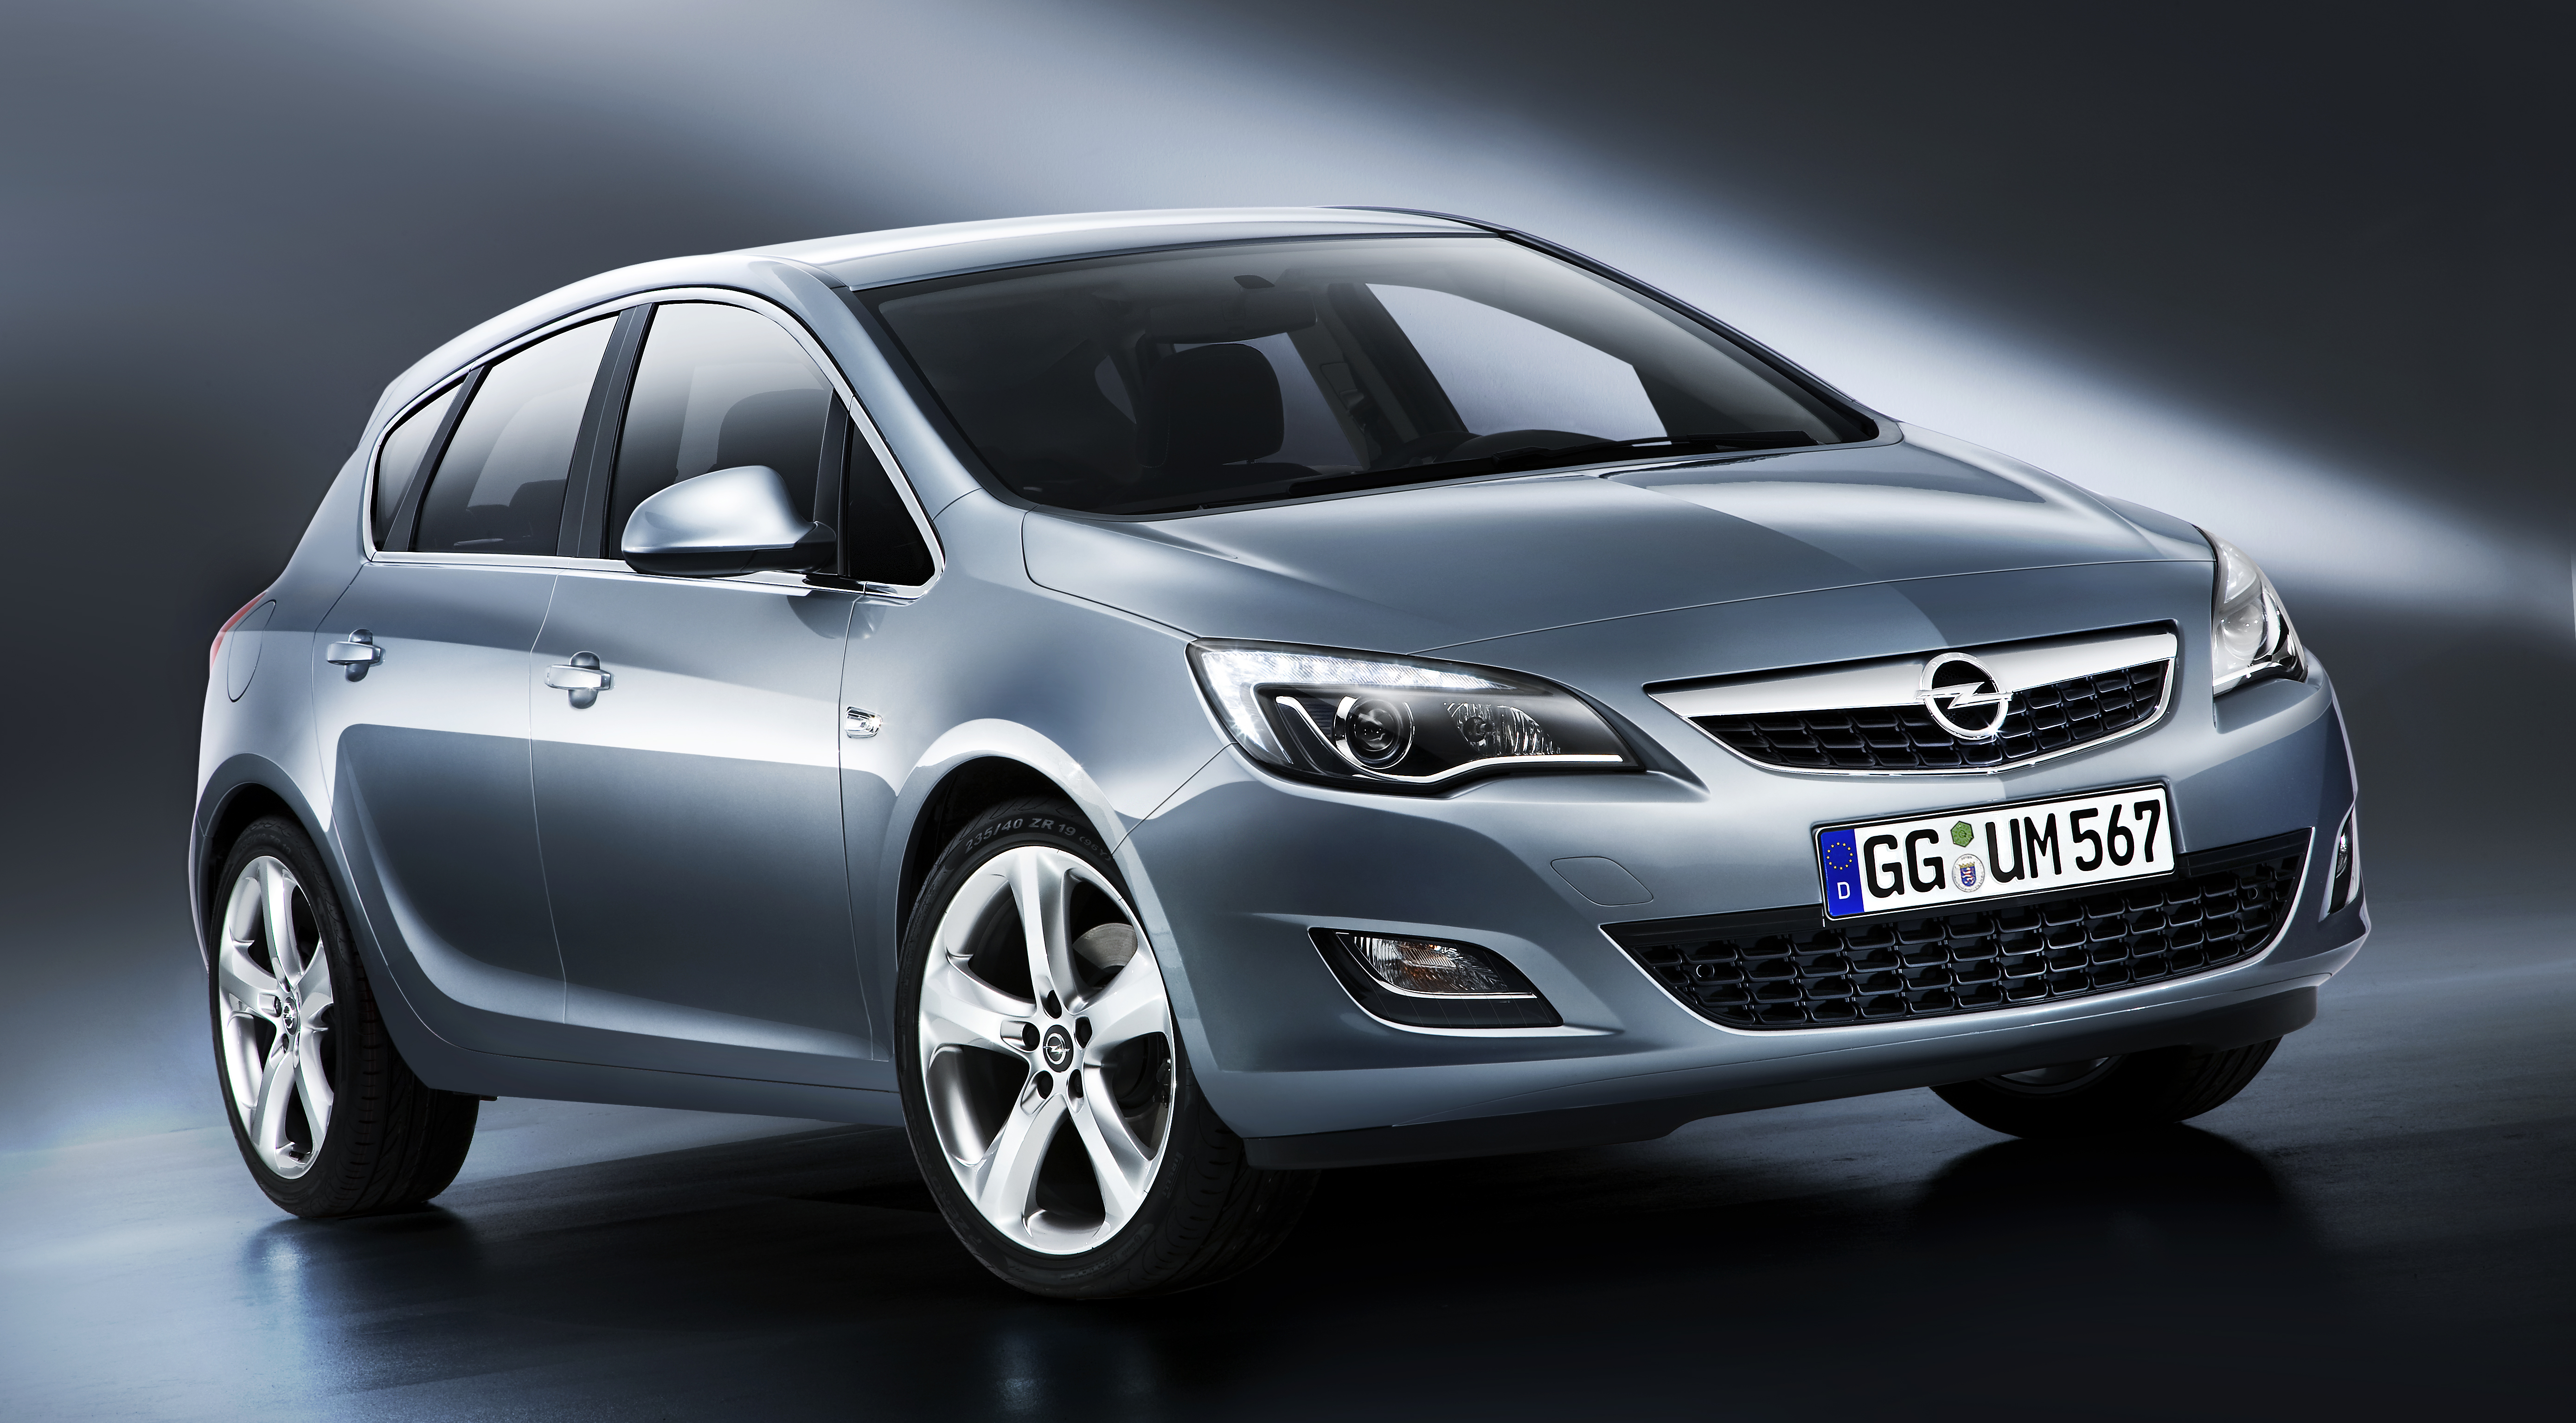 2009 Opel Astra Hatchback 5-door